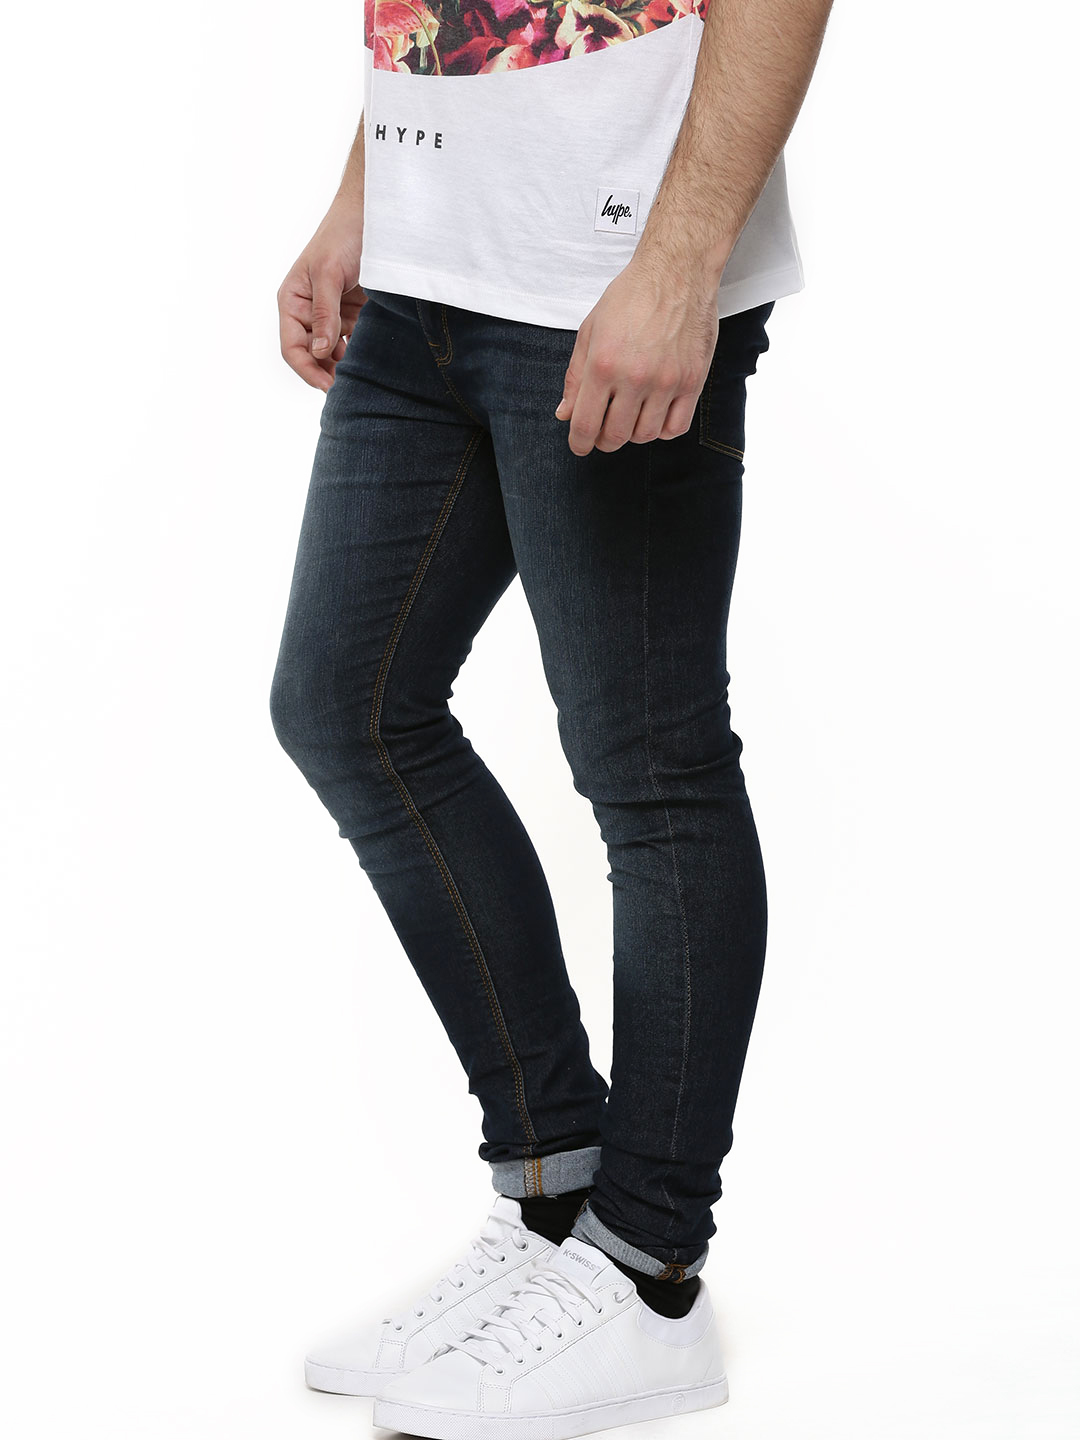 New Look Navy Dark Wash Skinny Jeans 1